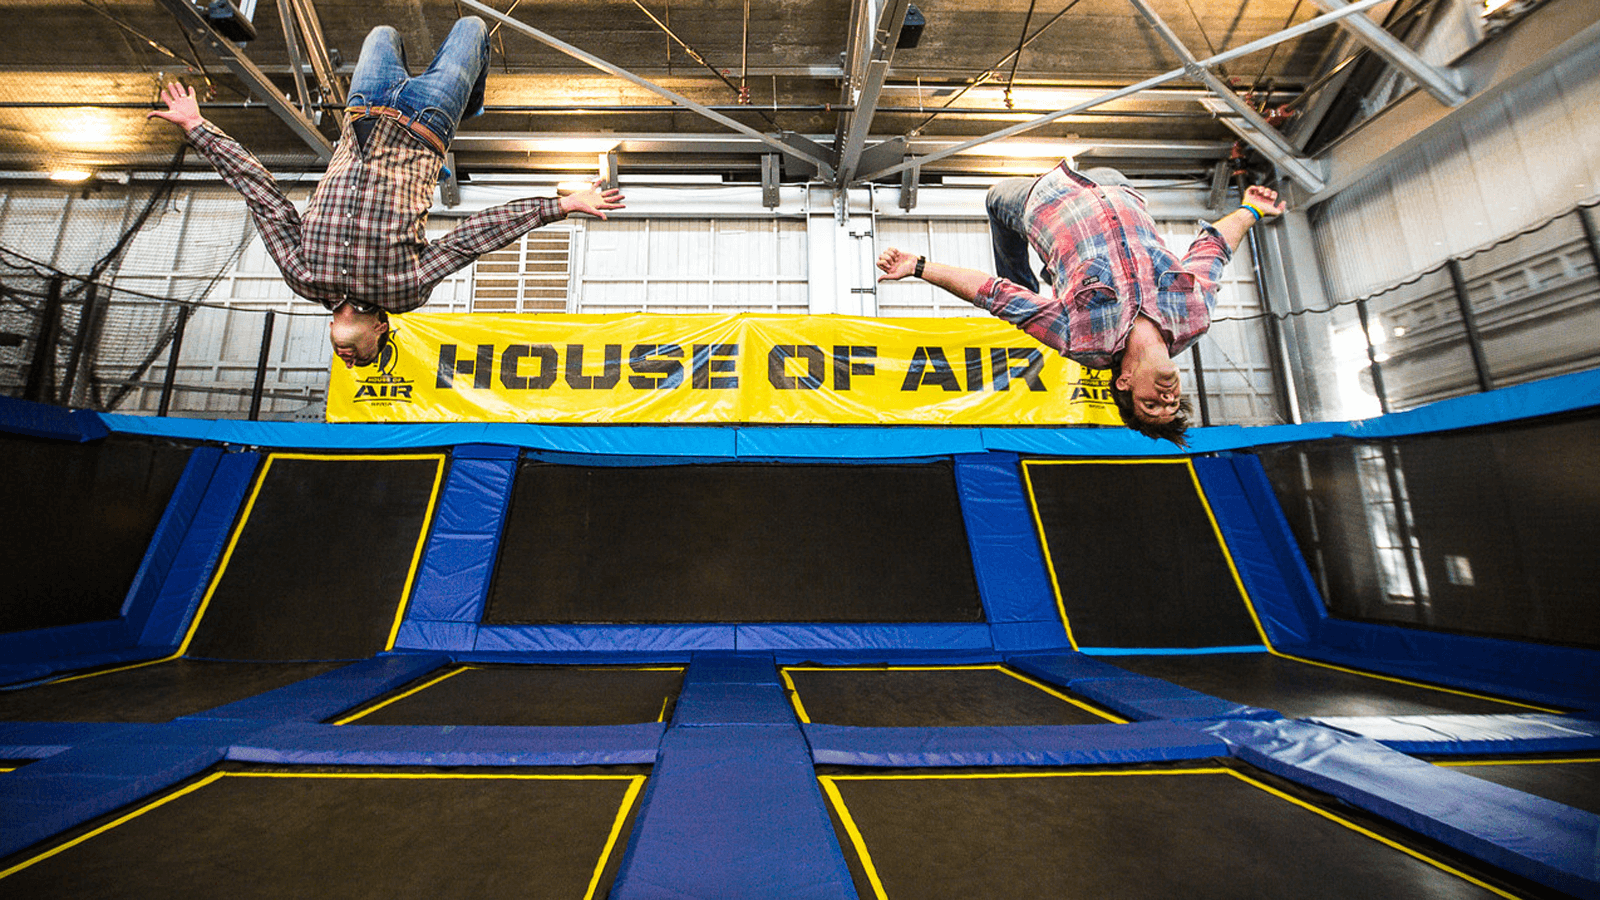 House of Air Founders - Dave Schaeffer and Paul McGeehan